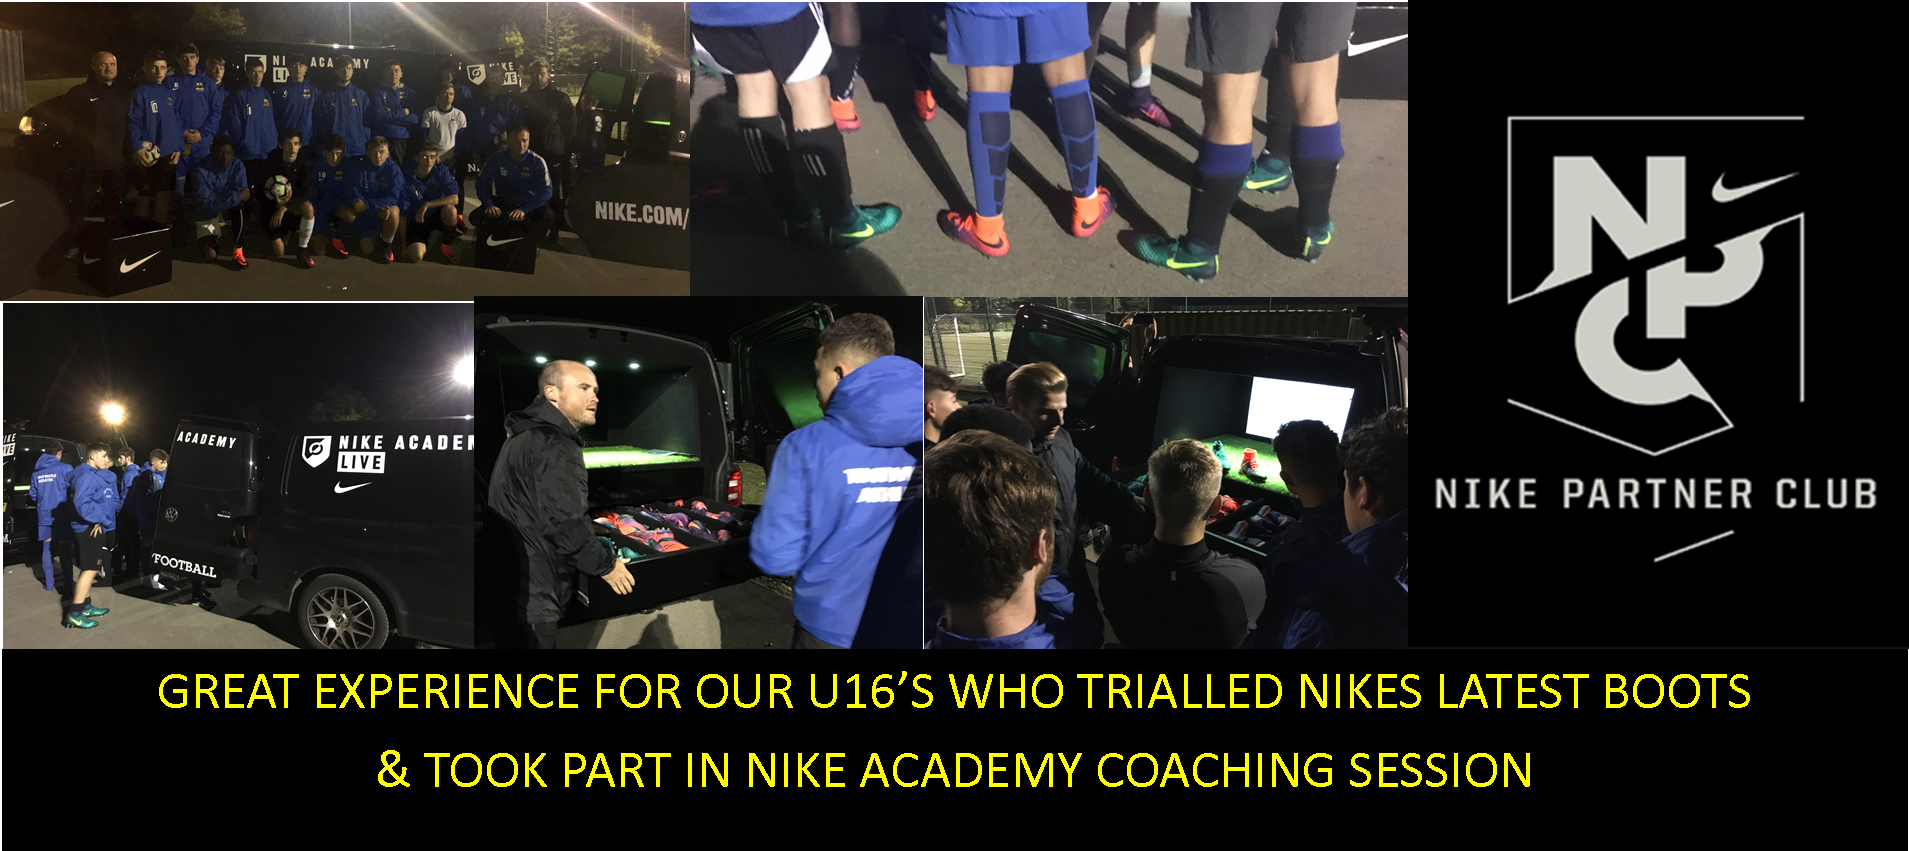 nike partner boot trial